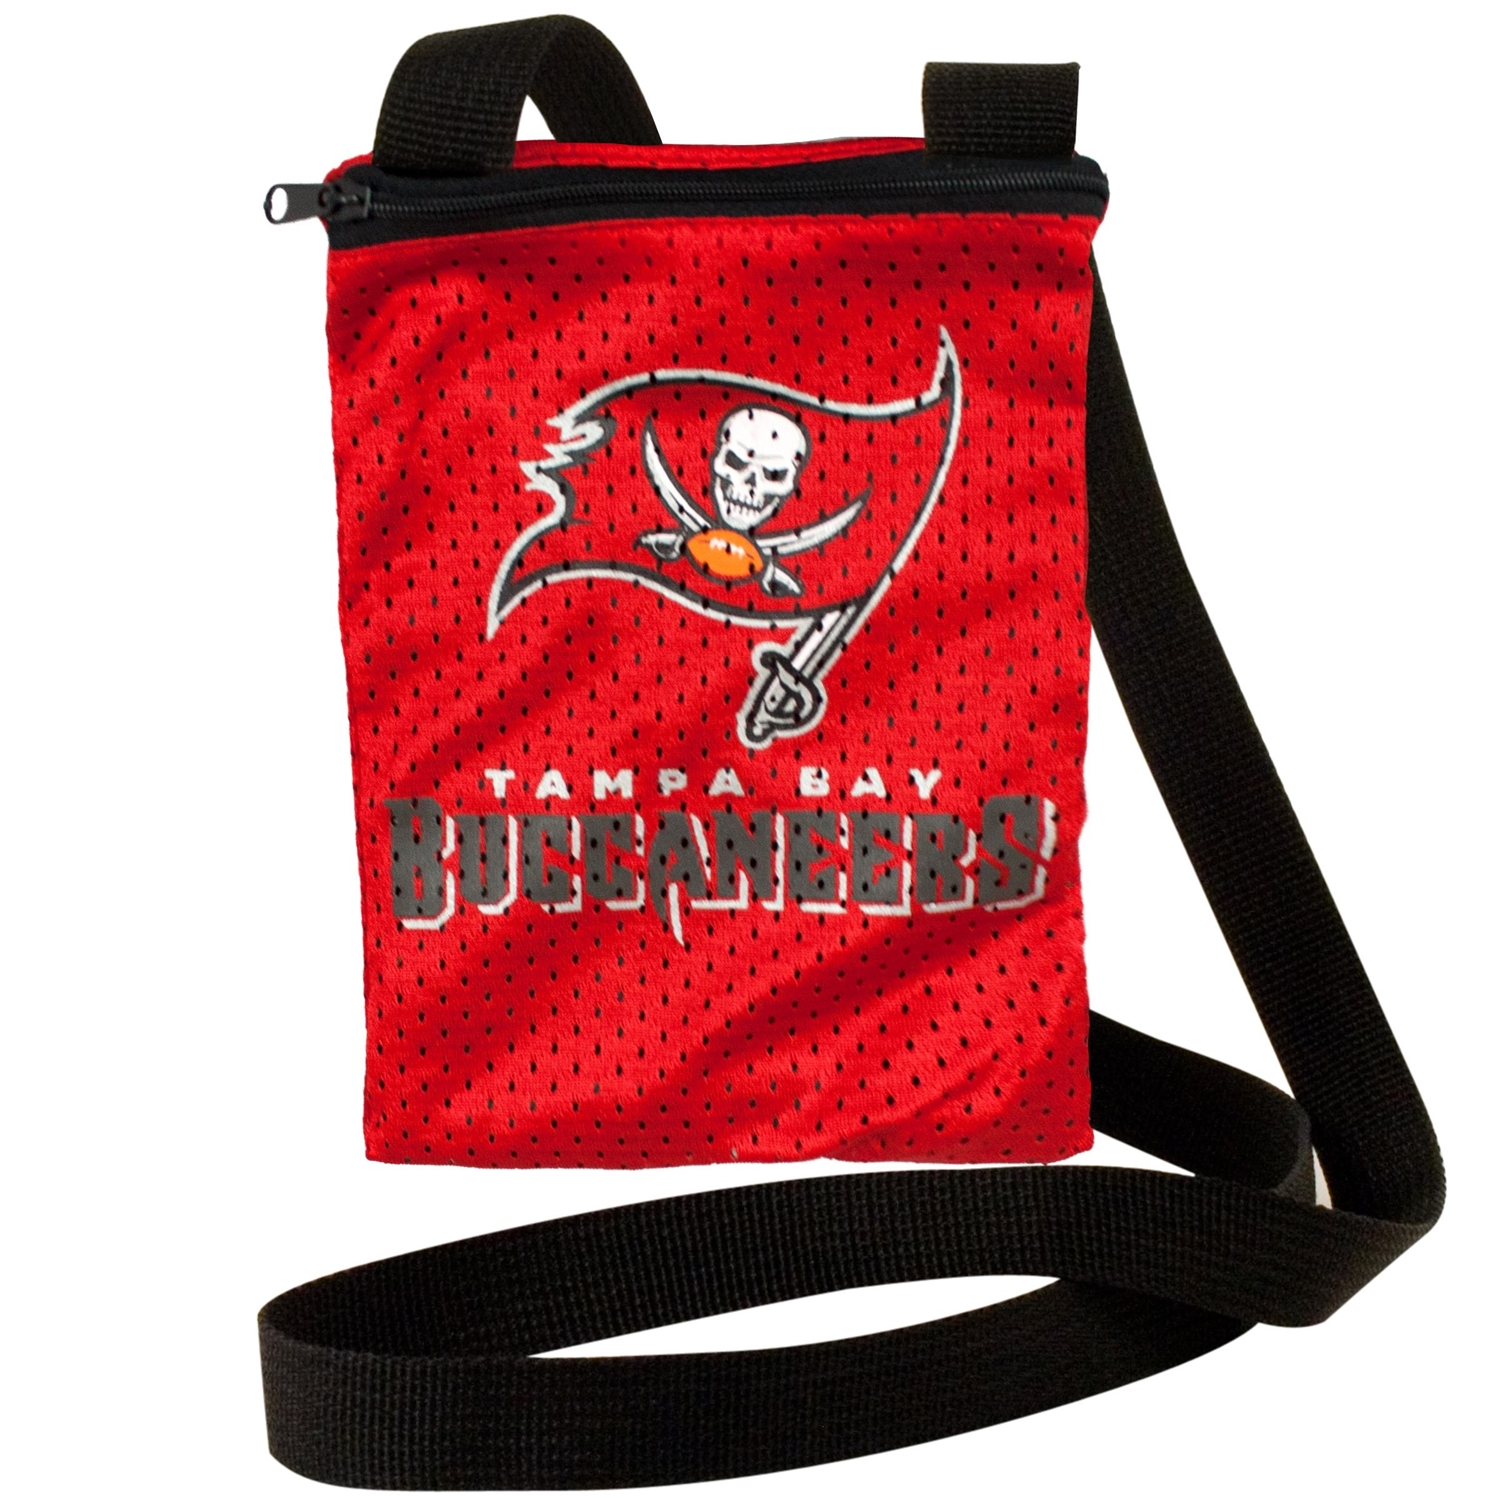 Tampa Bay Buccaneers Game Day Pouch - 300103-bucc-1 - Nfl Football Tampa Bay Buccaneers Toys Games Puzzles Games 300103-BUCC-1